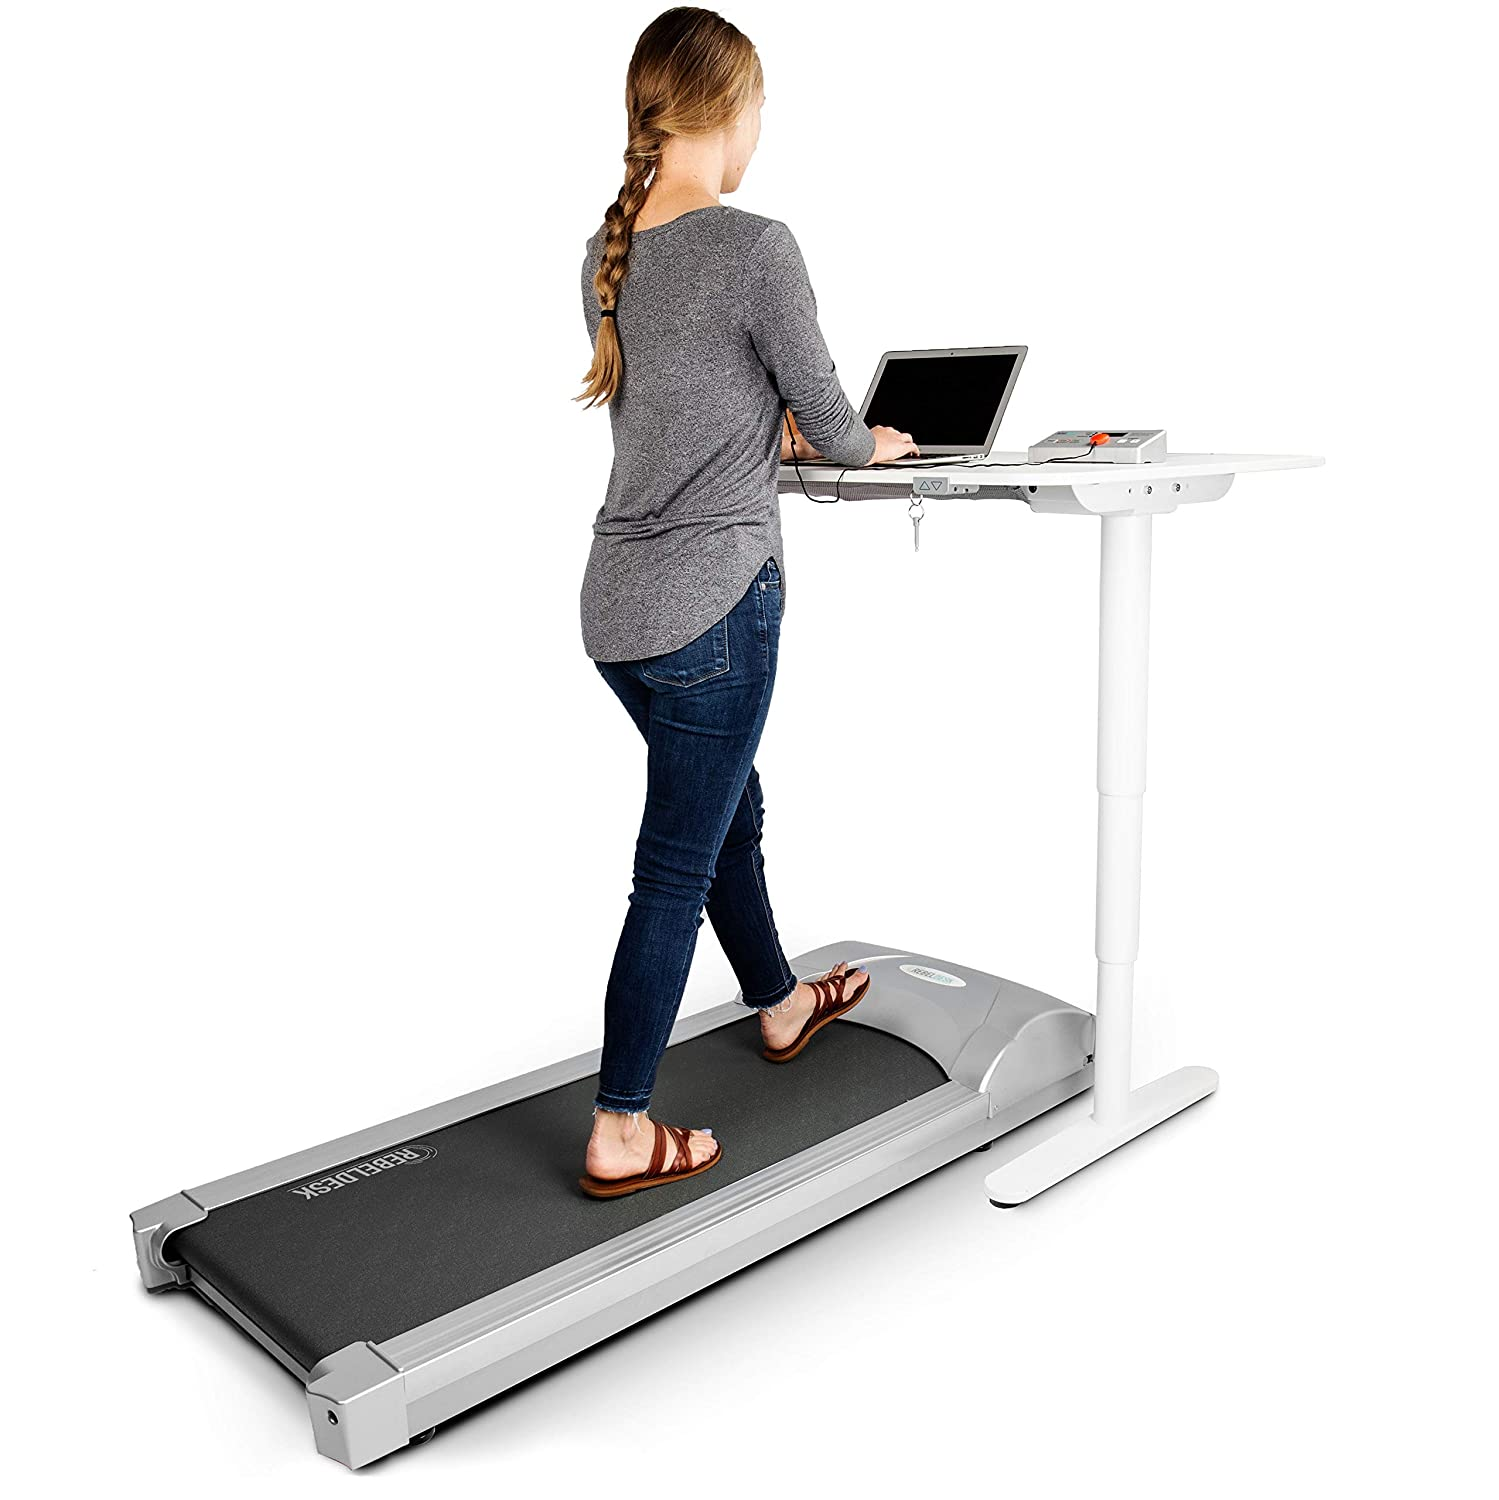 Amazon.com : Rebel Treadmill 1000 Under Desk Treadmill : Exercise Treadmills  : Sports U0026 Outdoors